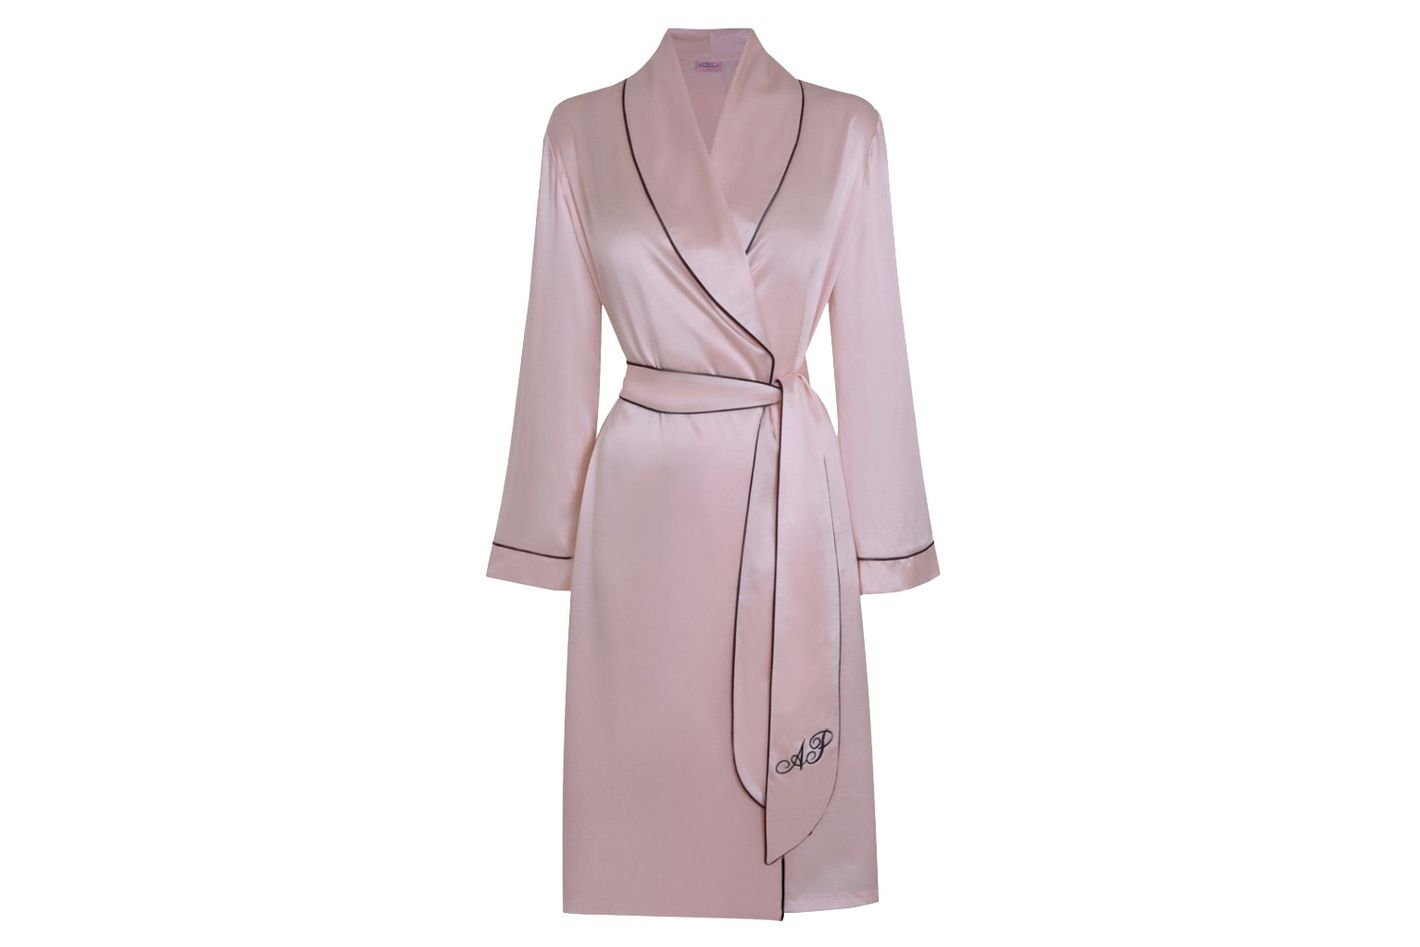 Agent Provocateur Dressing Gown